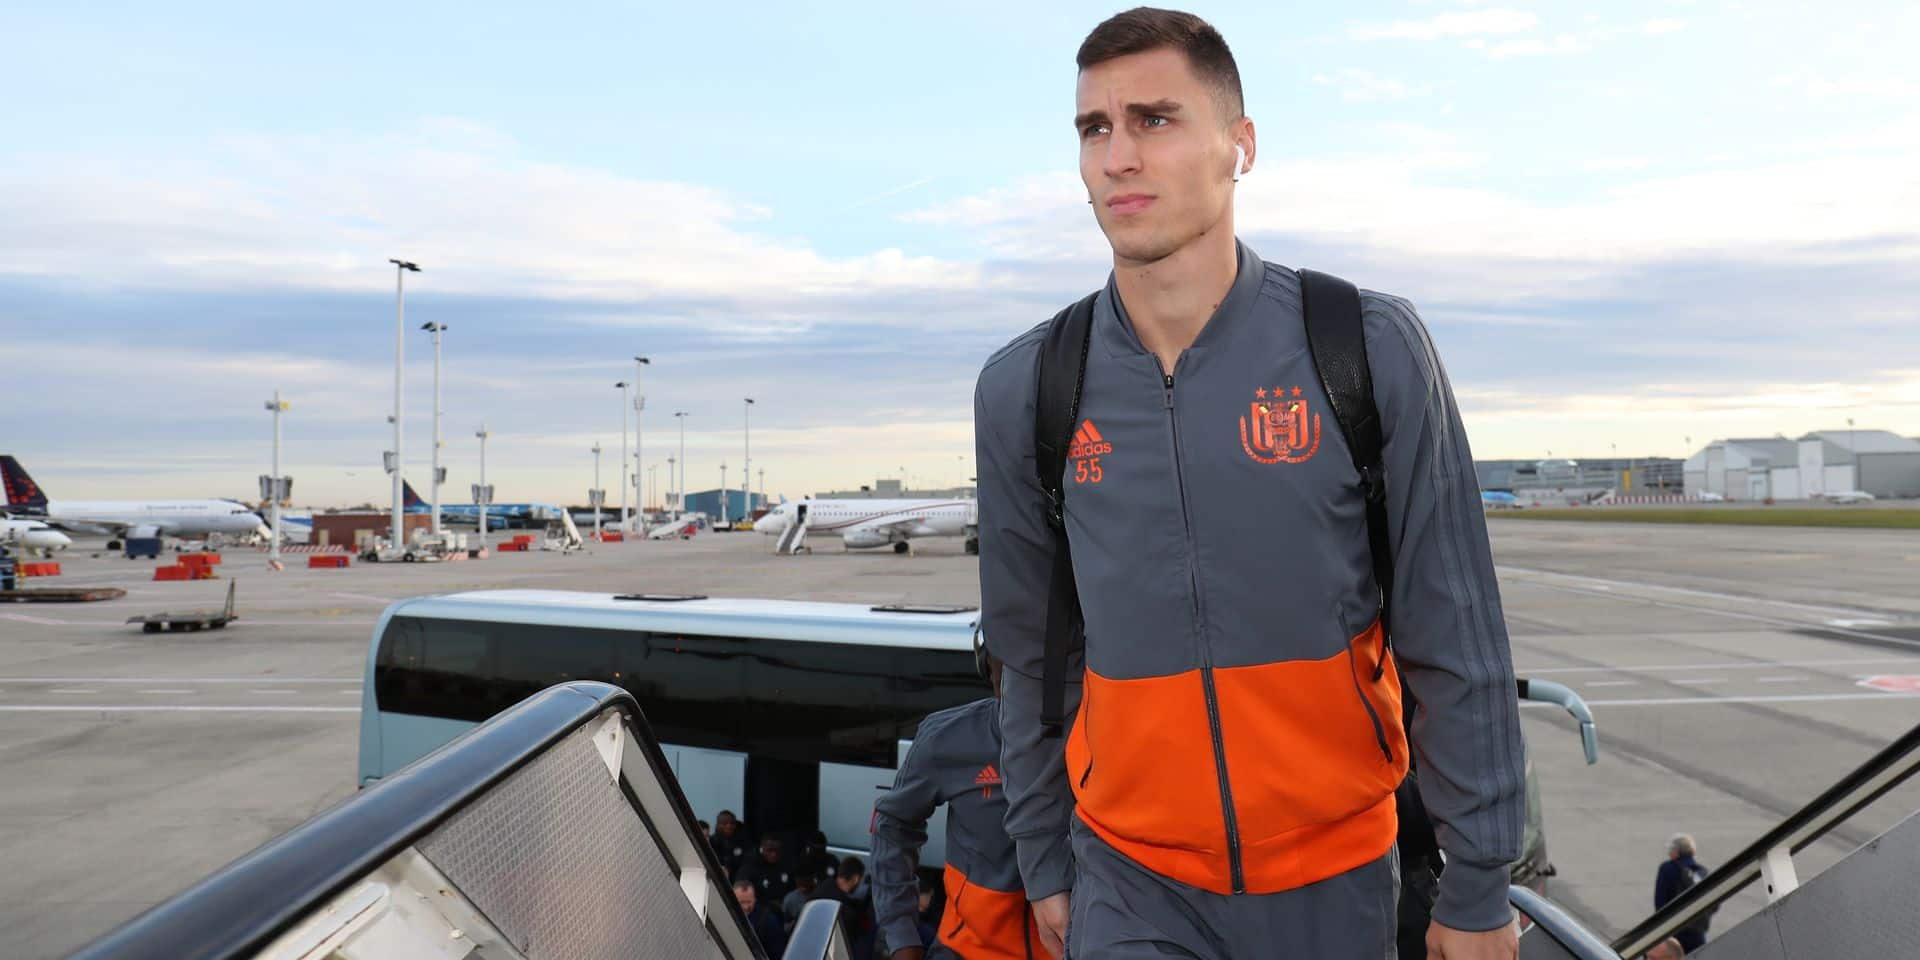 Anderlecht's Ognjen Vranjes pictured during the departure of Belgian soccer team RSC Anderlecht for Istanbul, Turkey, Wednesday 07 November 2018 at Brussels Airport, in Zaventem. Tomorrow RSC Anderlecht will meet Turkish team Fenerbahce on day four of the UEFA Europa League group stage, in group D. BELGA PHOTO VIRGINIE LEFOUR